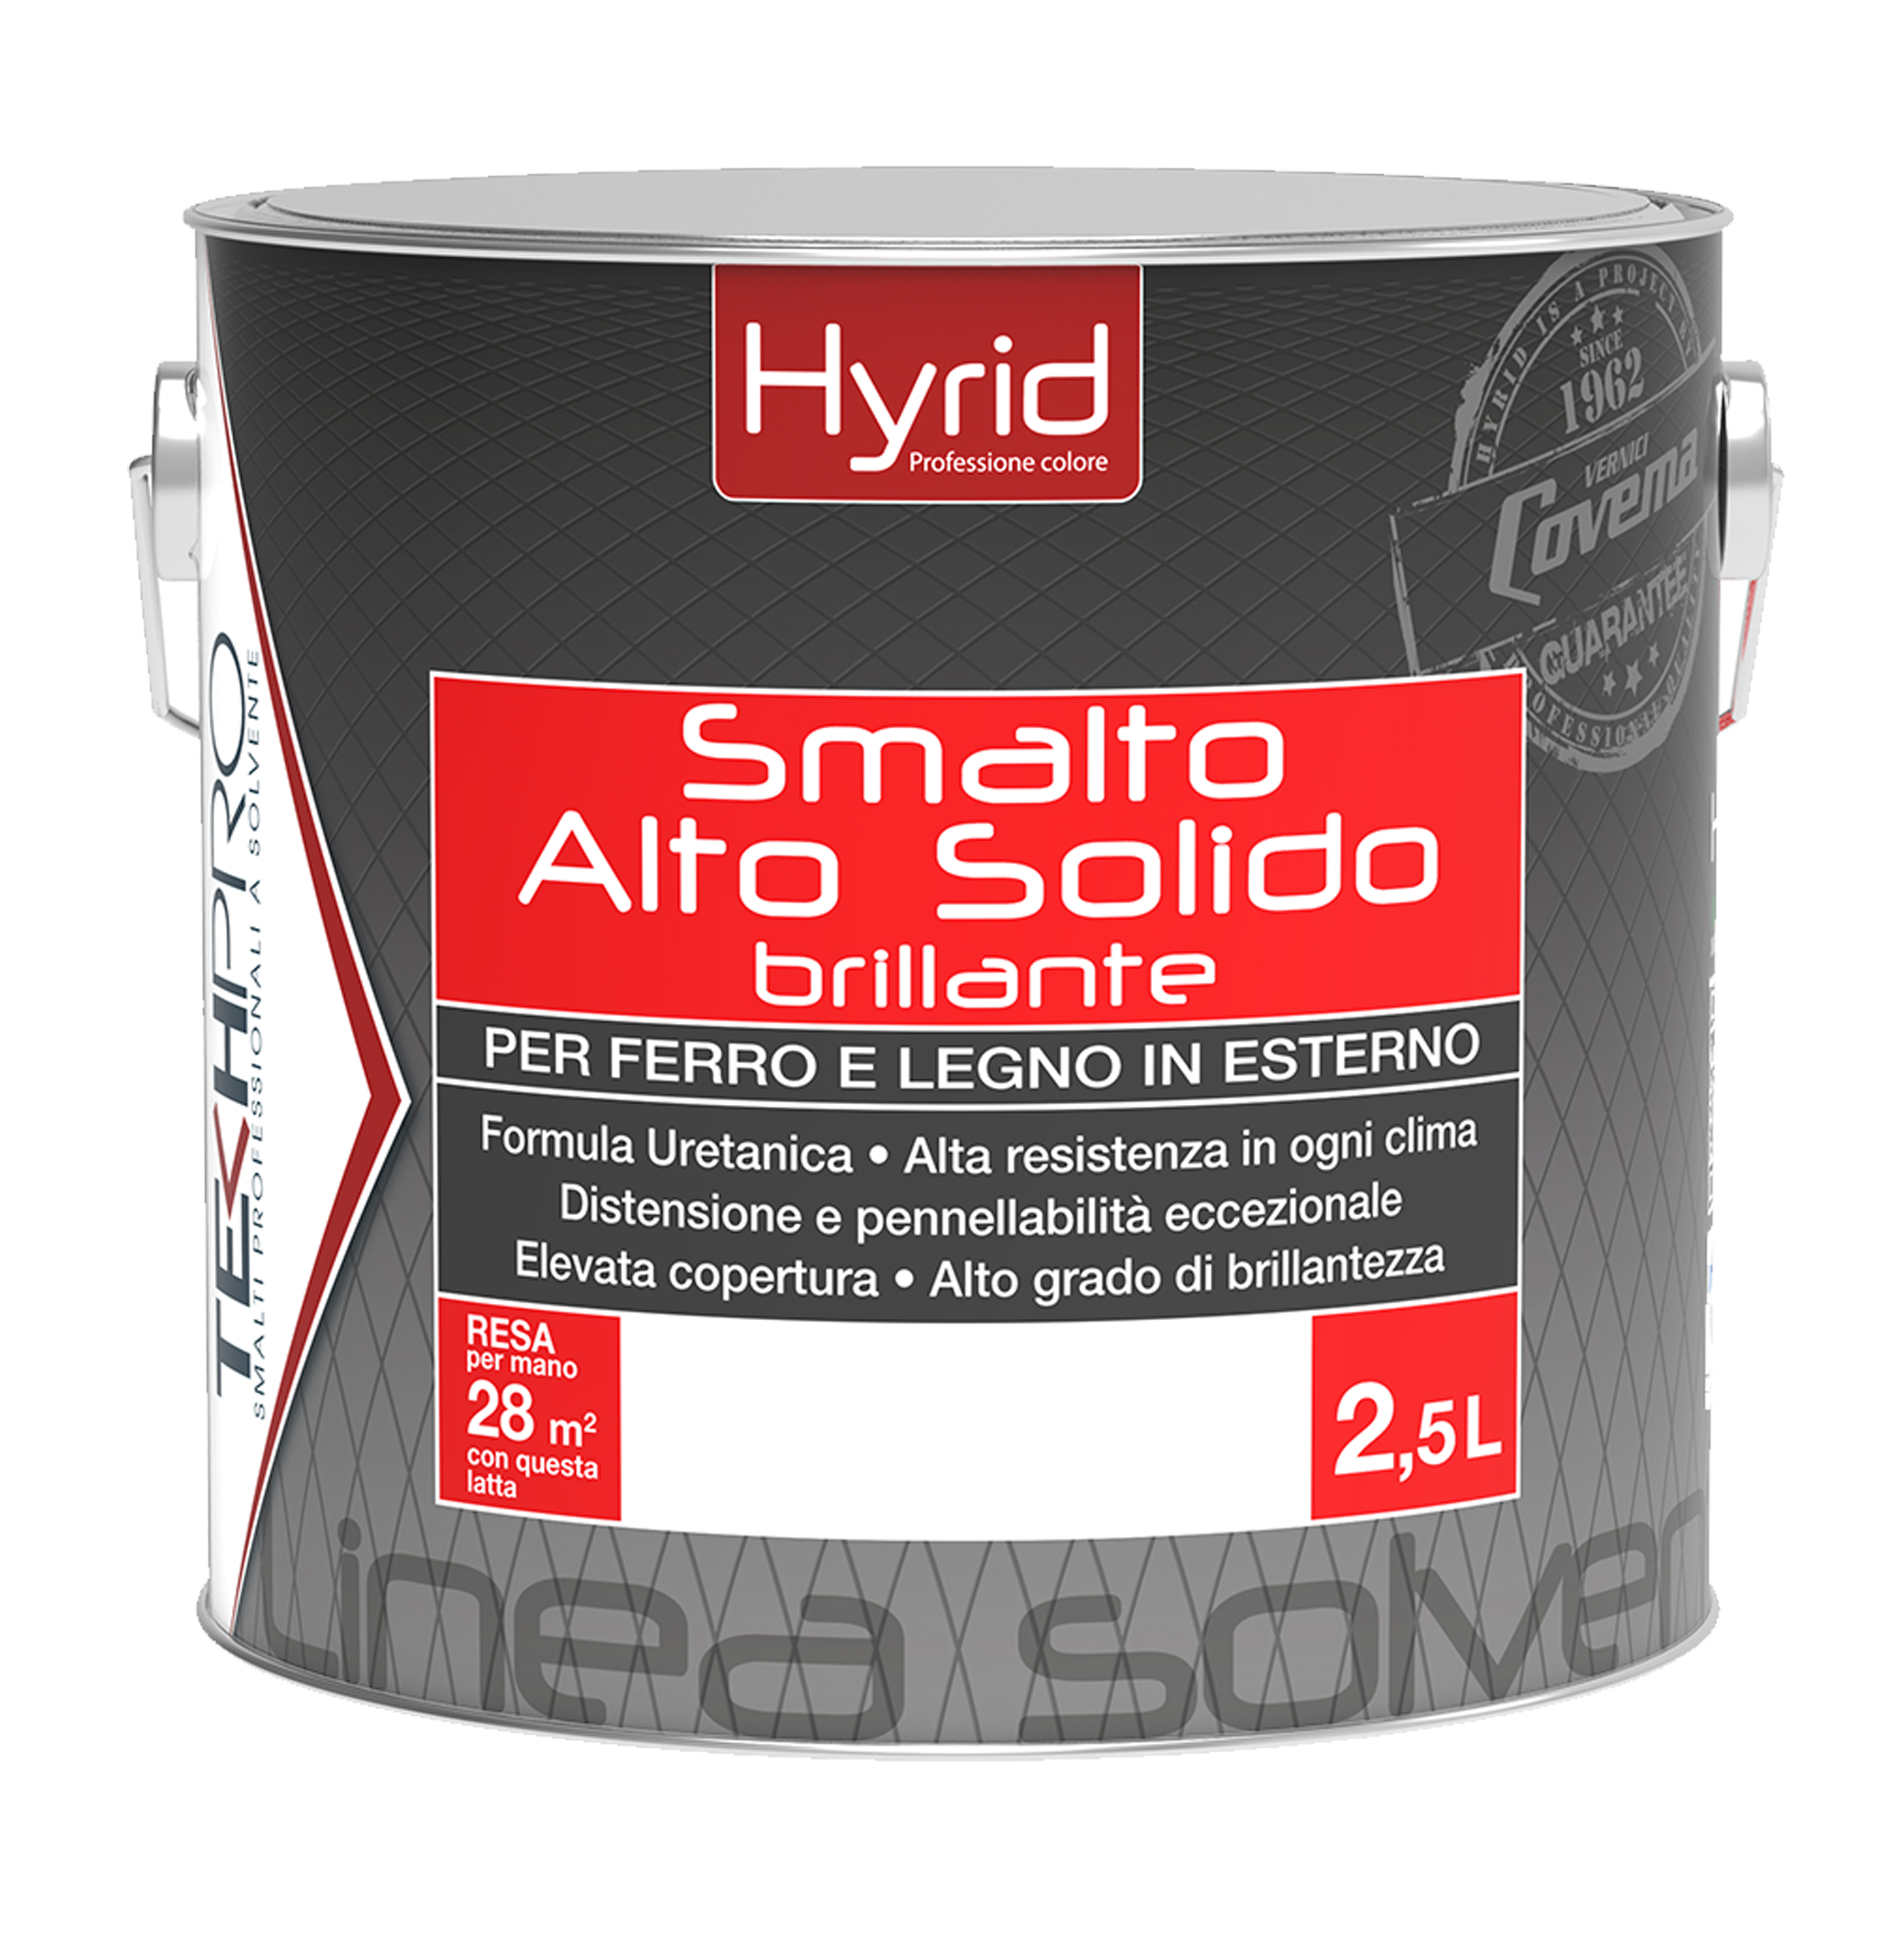 Hyrid Smalto Alto Solido Brillante